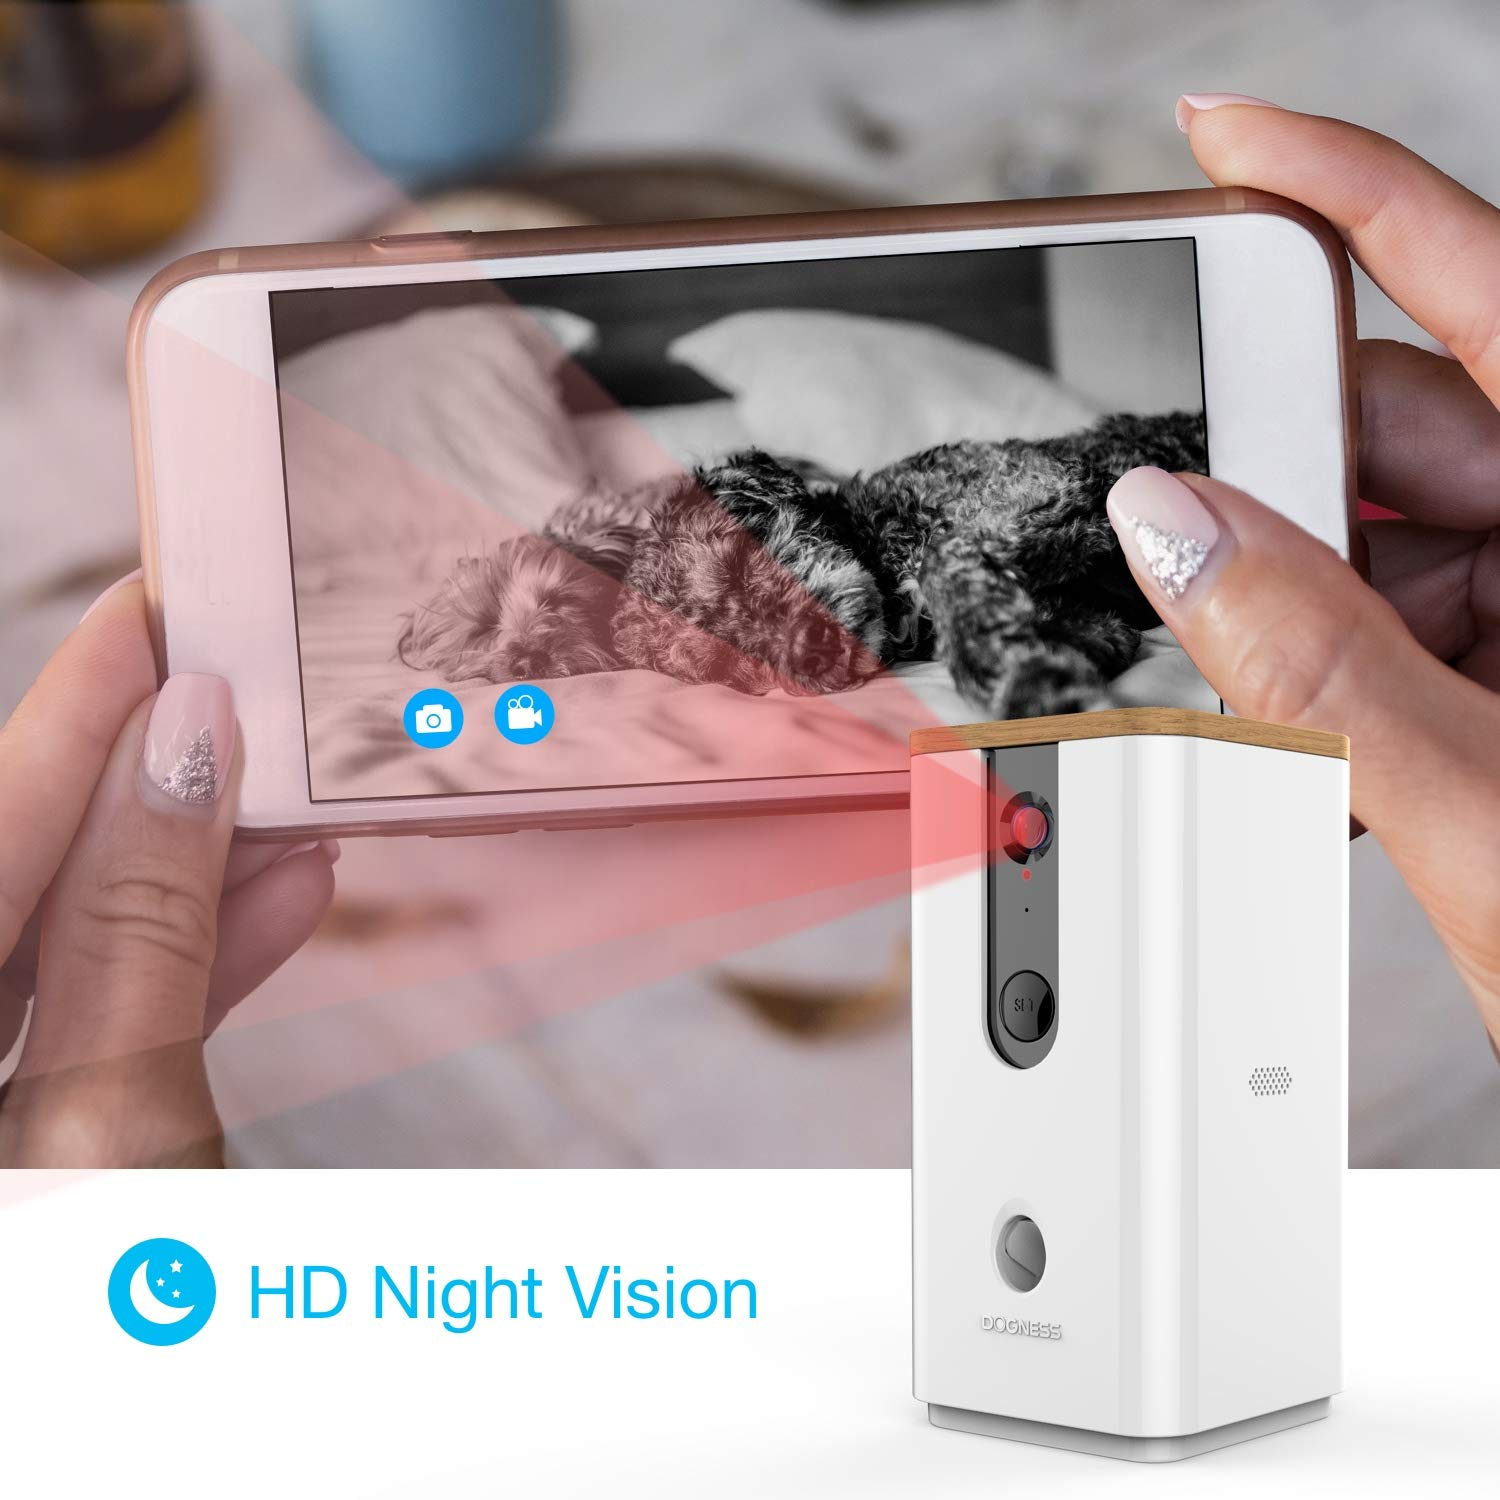 Vbroad Smart Pet Camera Treat Dispenser, WiFi Remote Camera Monitor 720P HD Night Vision Video with 2-Way Audio Designed for Dogs and Cats, Home Safety Pet Monitor (Android/iOS) by Vbroad (Image #4)